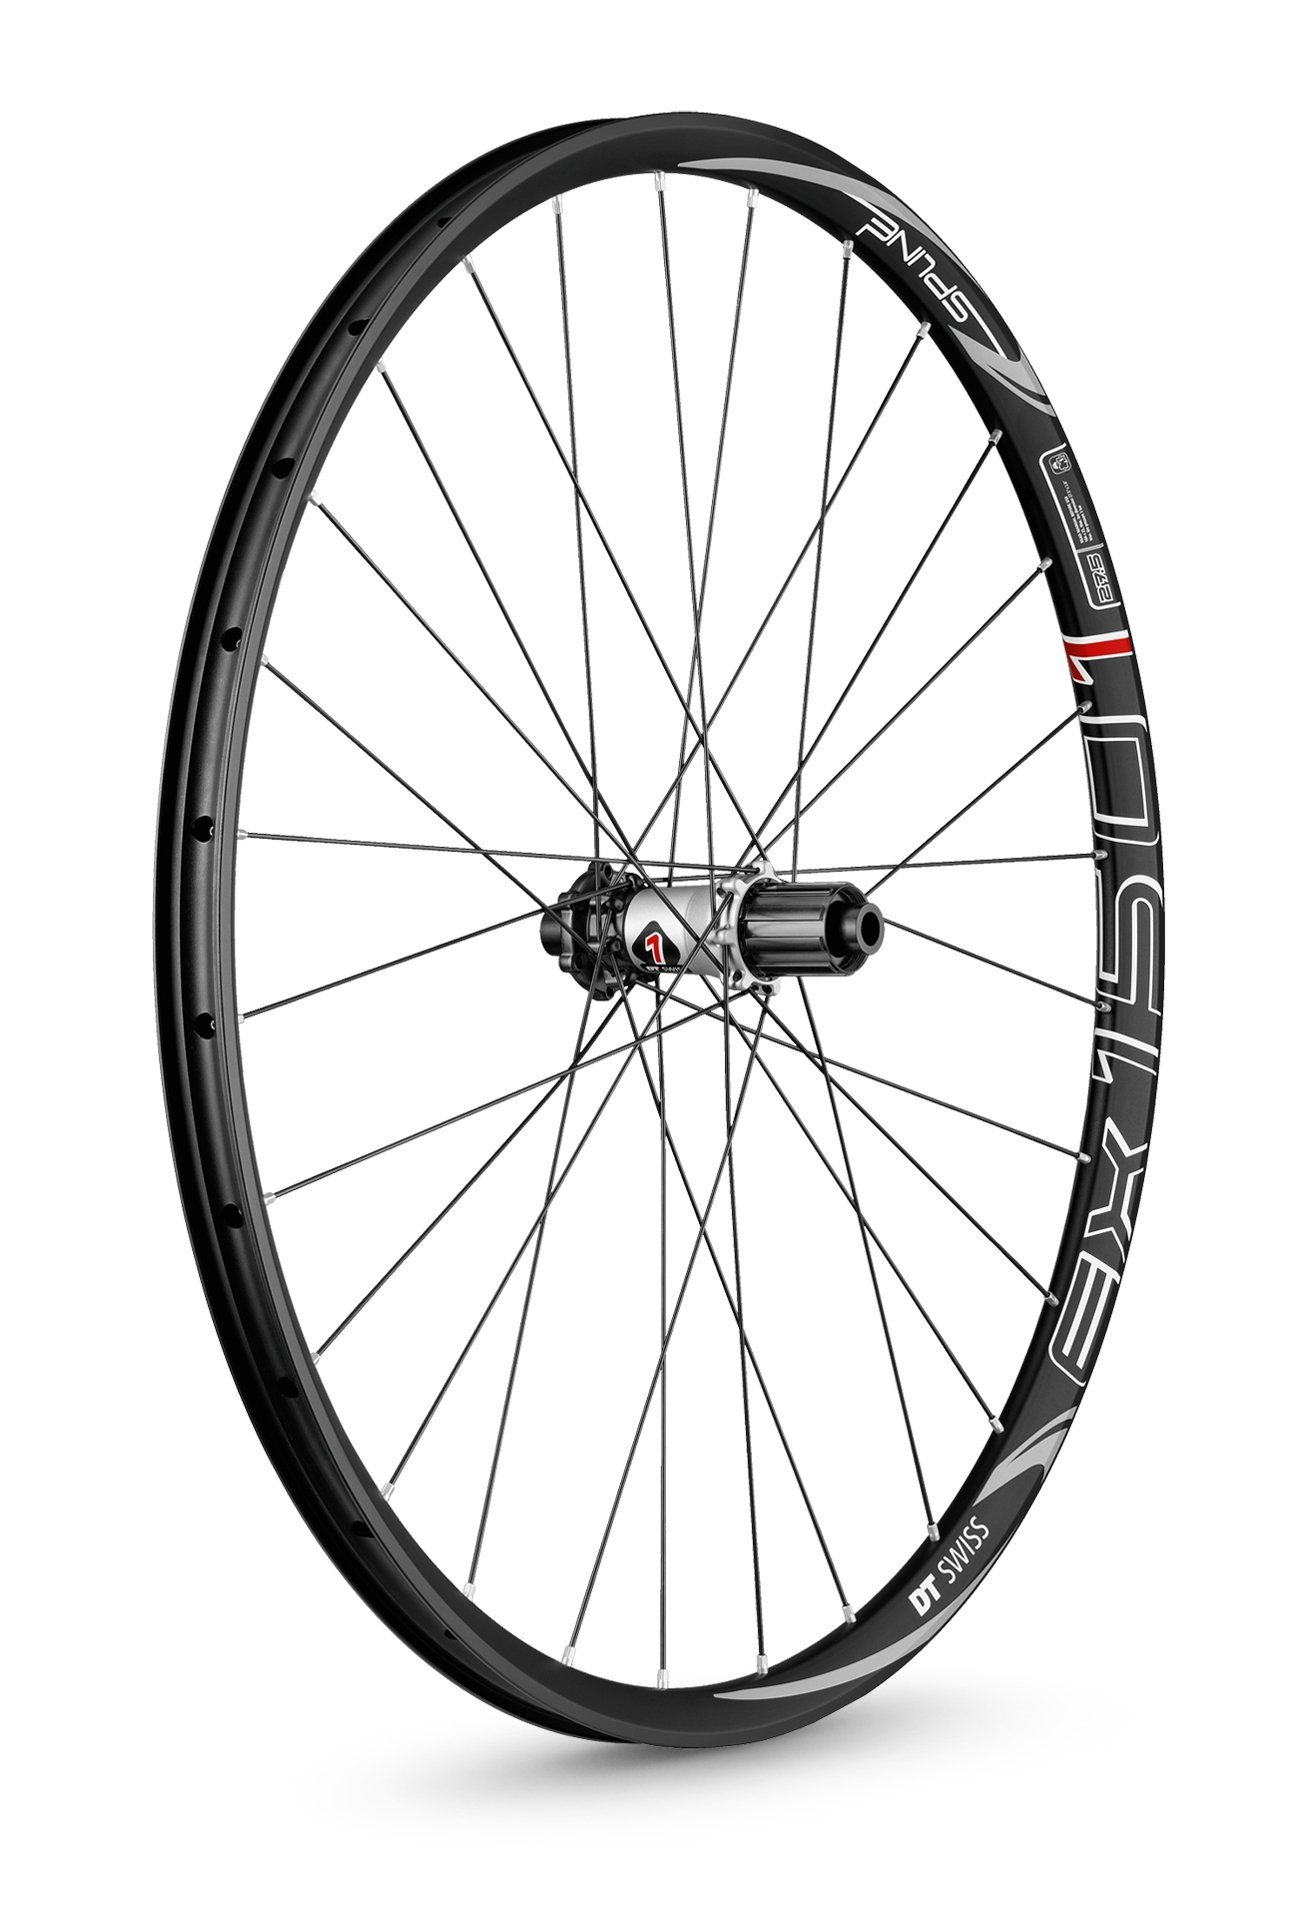 "DT Swiss Laufrad »EX 1501 Spline One 27.5"" HR 142/12mm«"